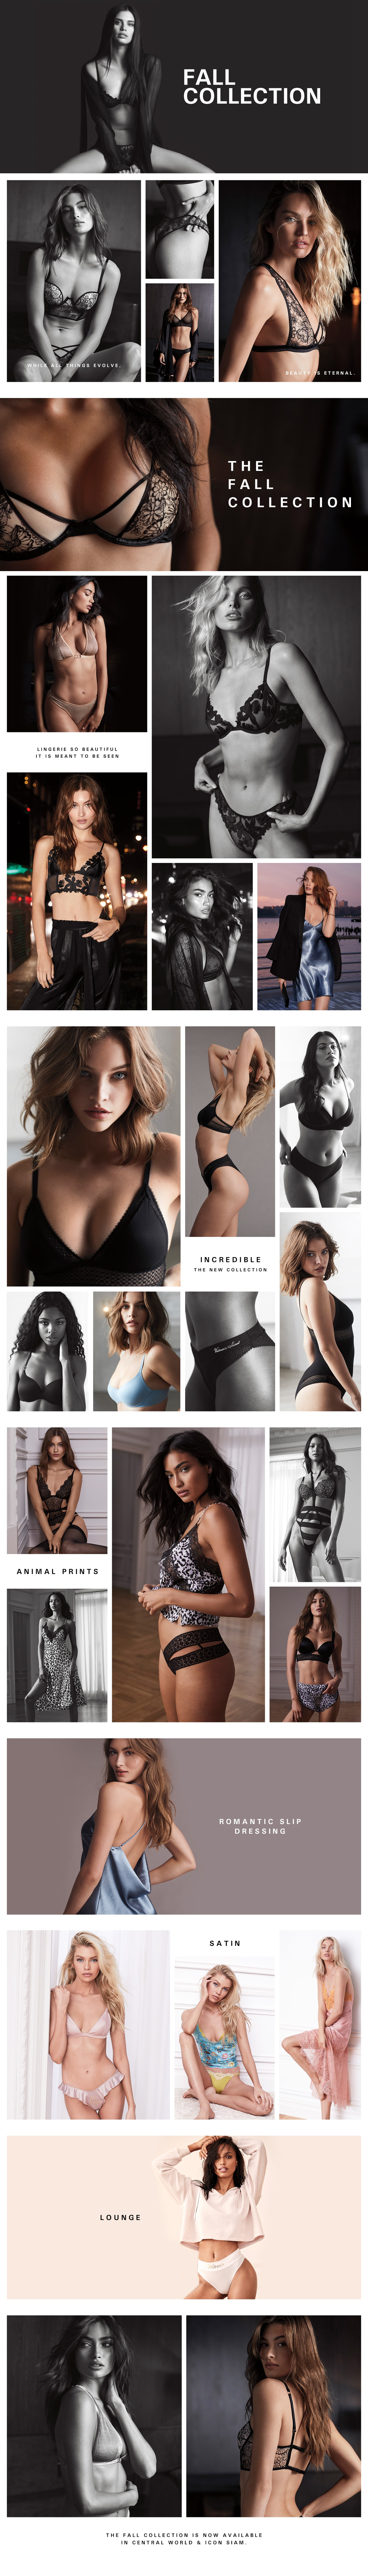 Luxe Lingerie 2019